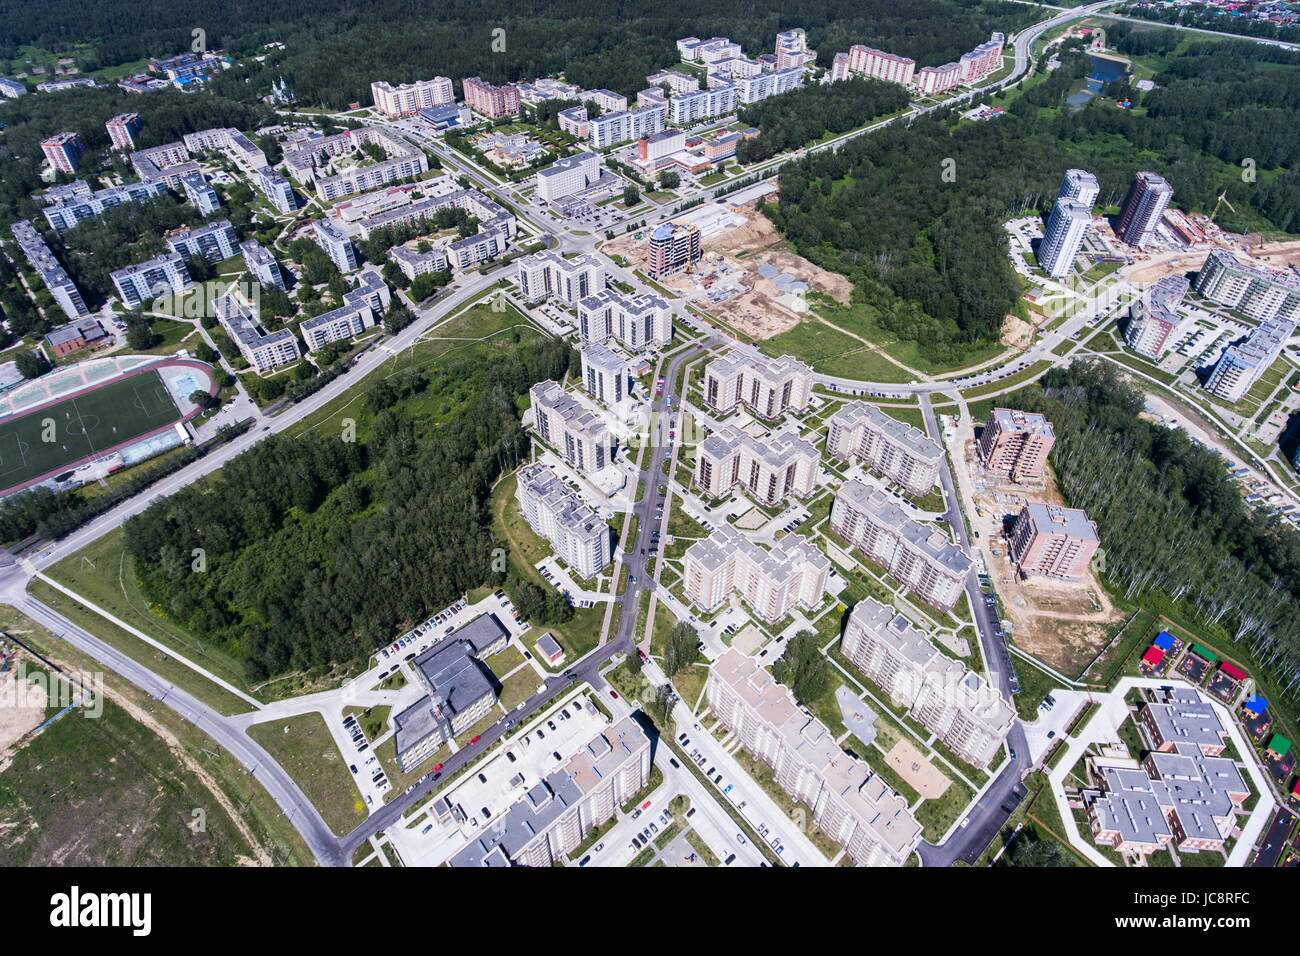 Koltsovo  Novosibirsk-region-russia-june-14-2017-an-aerial-view-of-koltsovo-JC8RFC